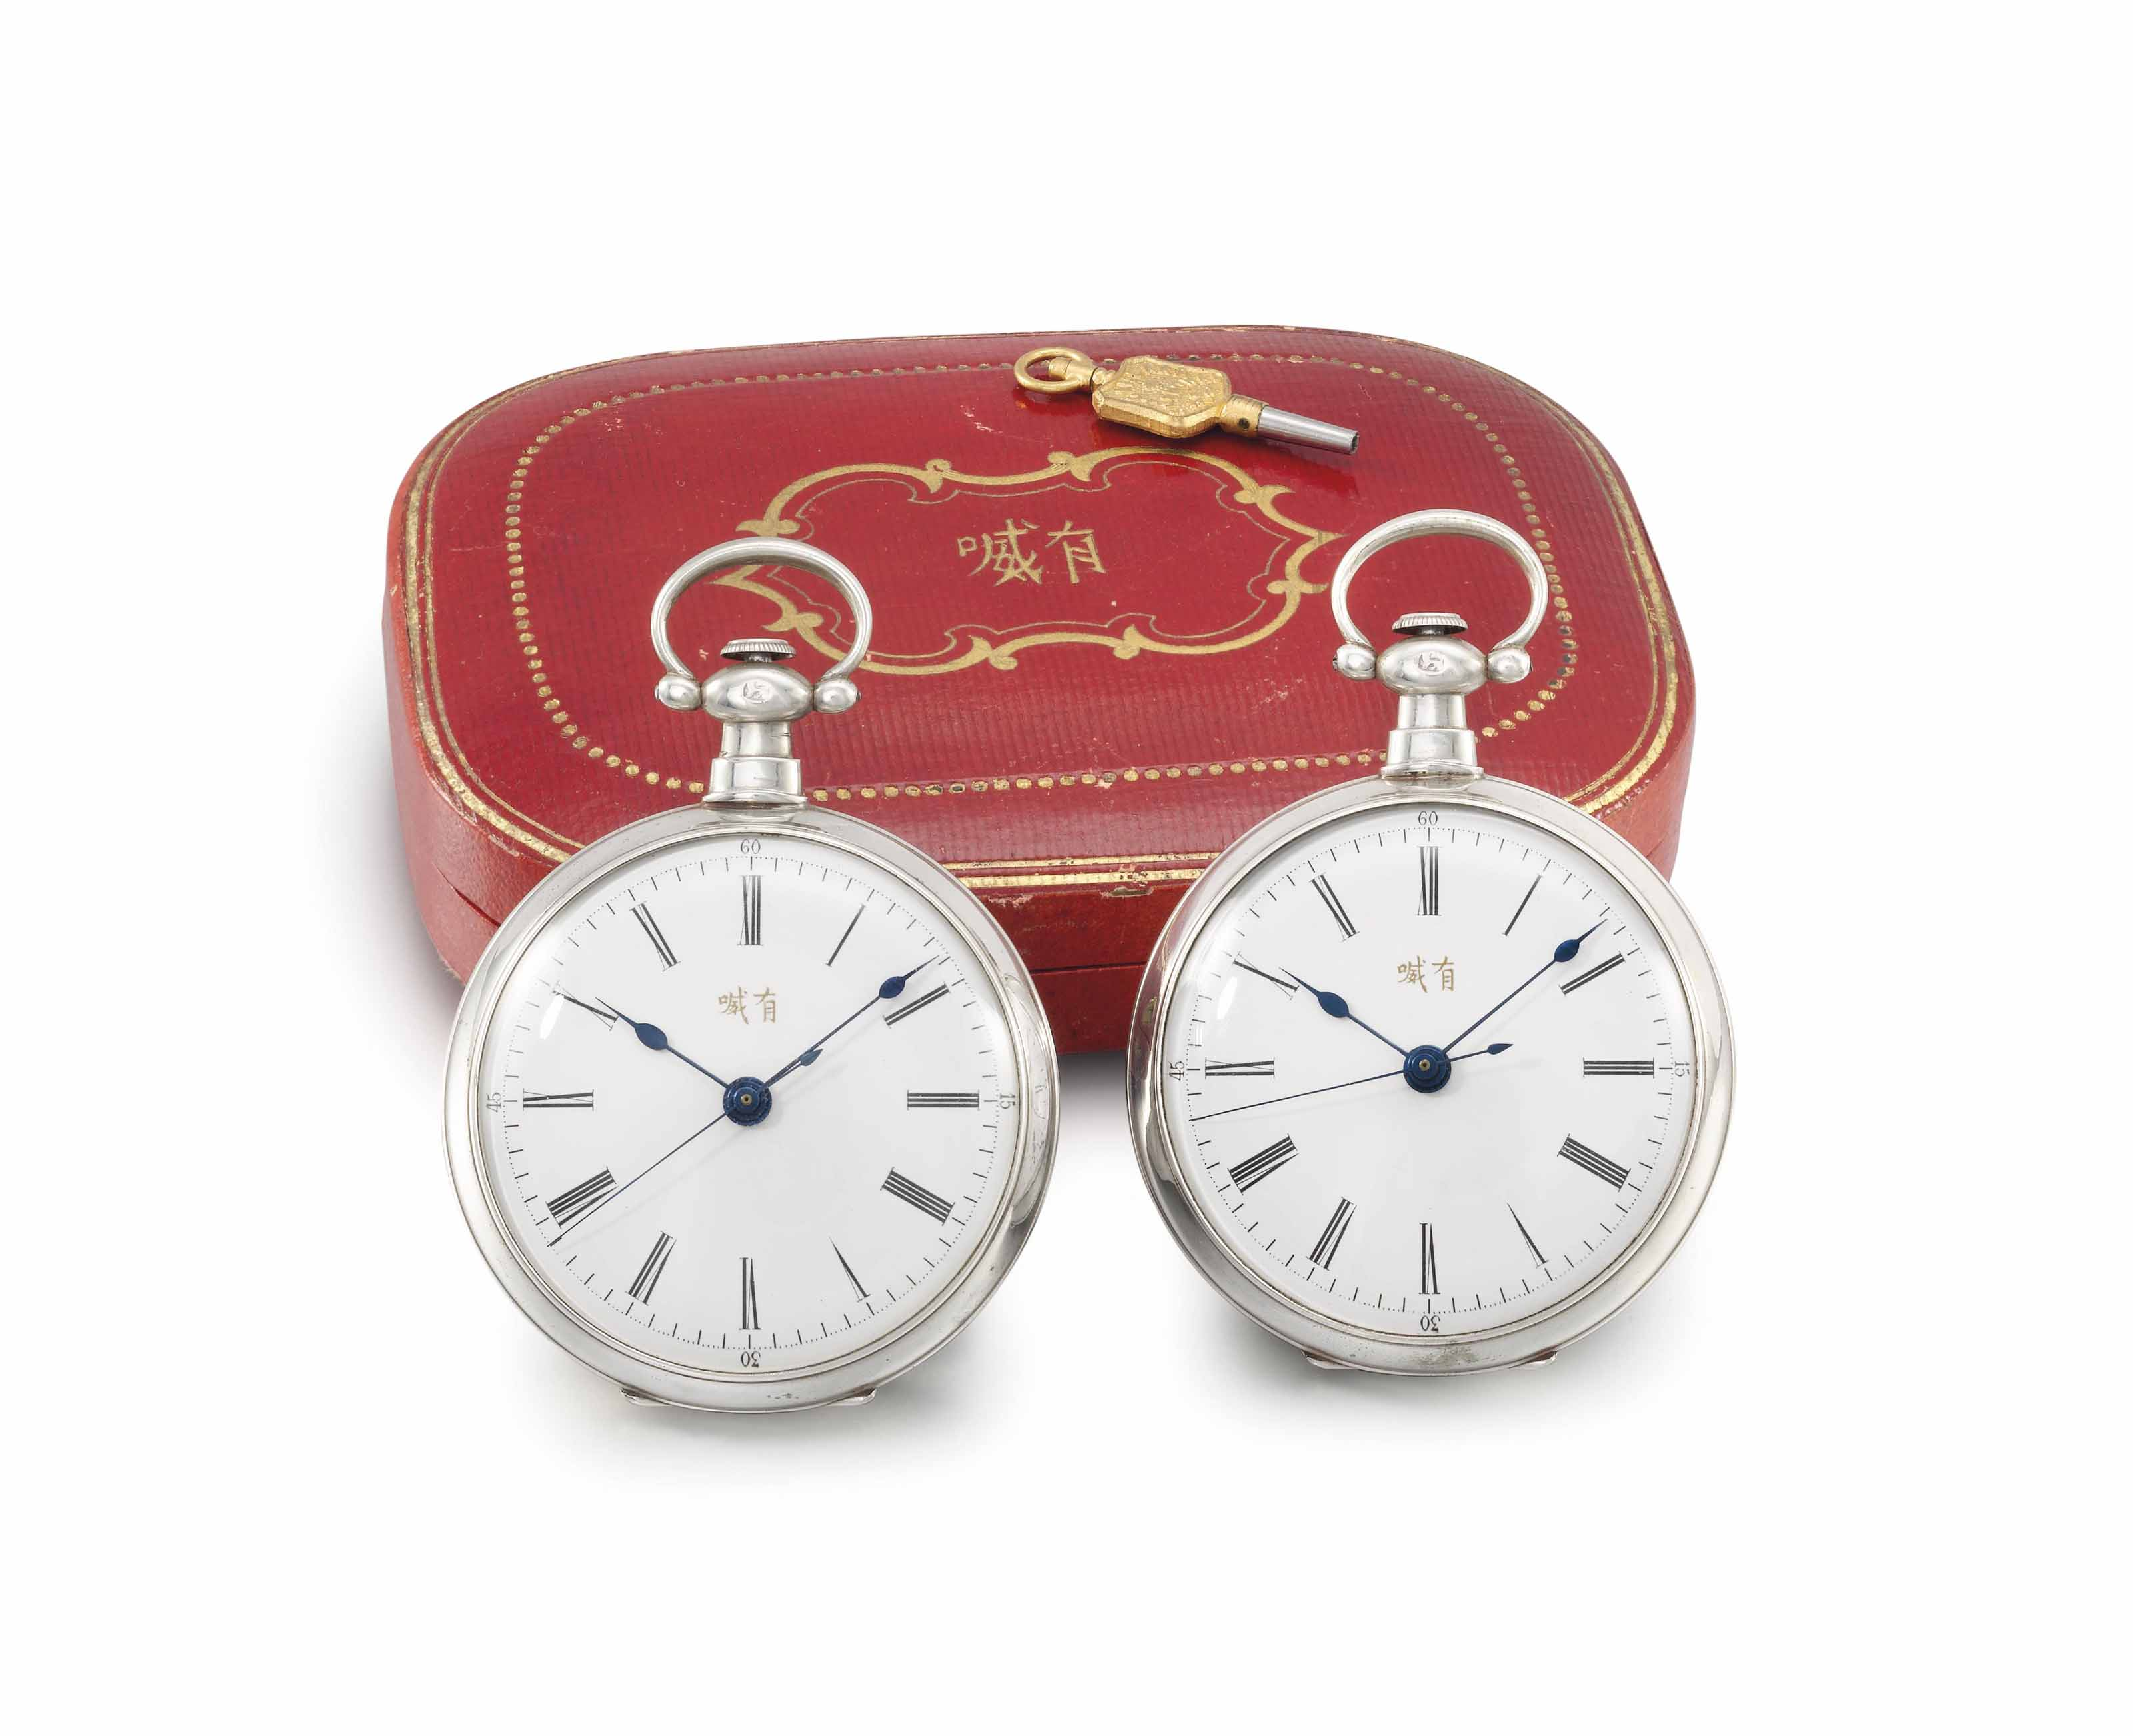 Juvet. A rare and fine pair of silver openface lever watches with sweep centre seconds, made for the Chinese market